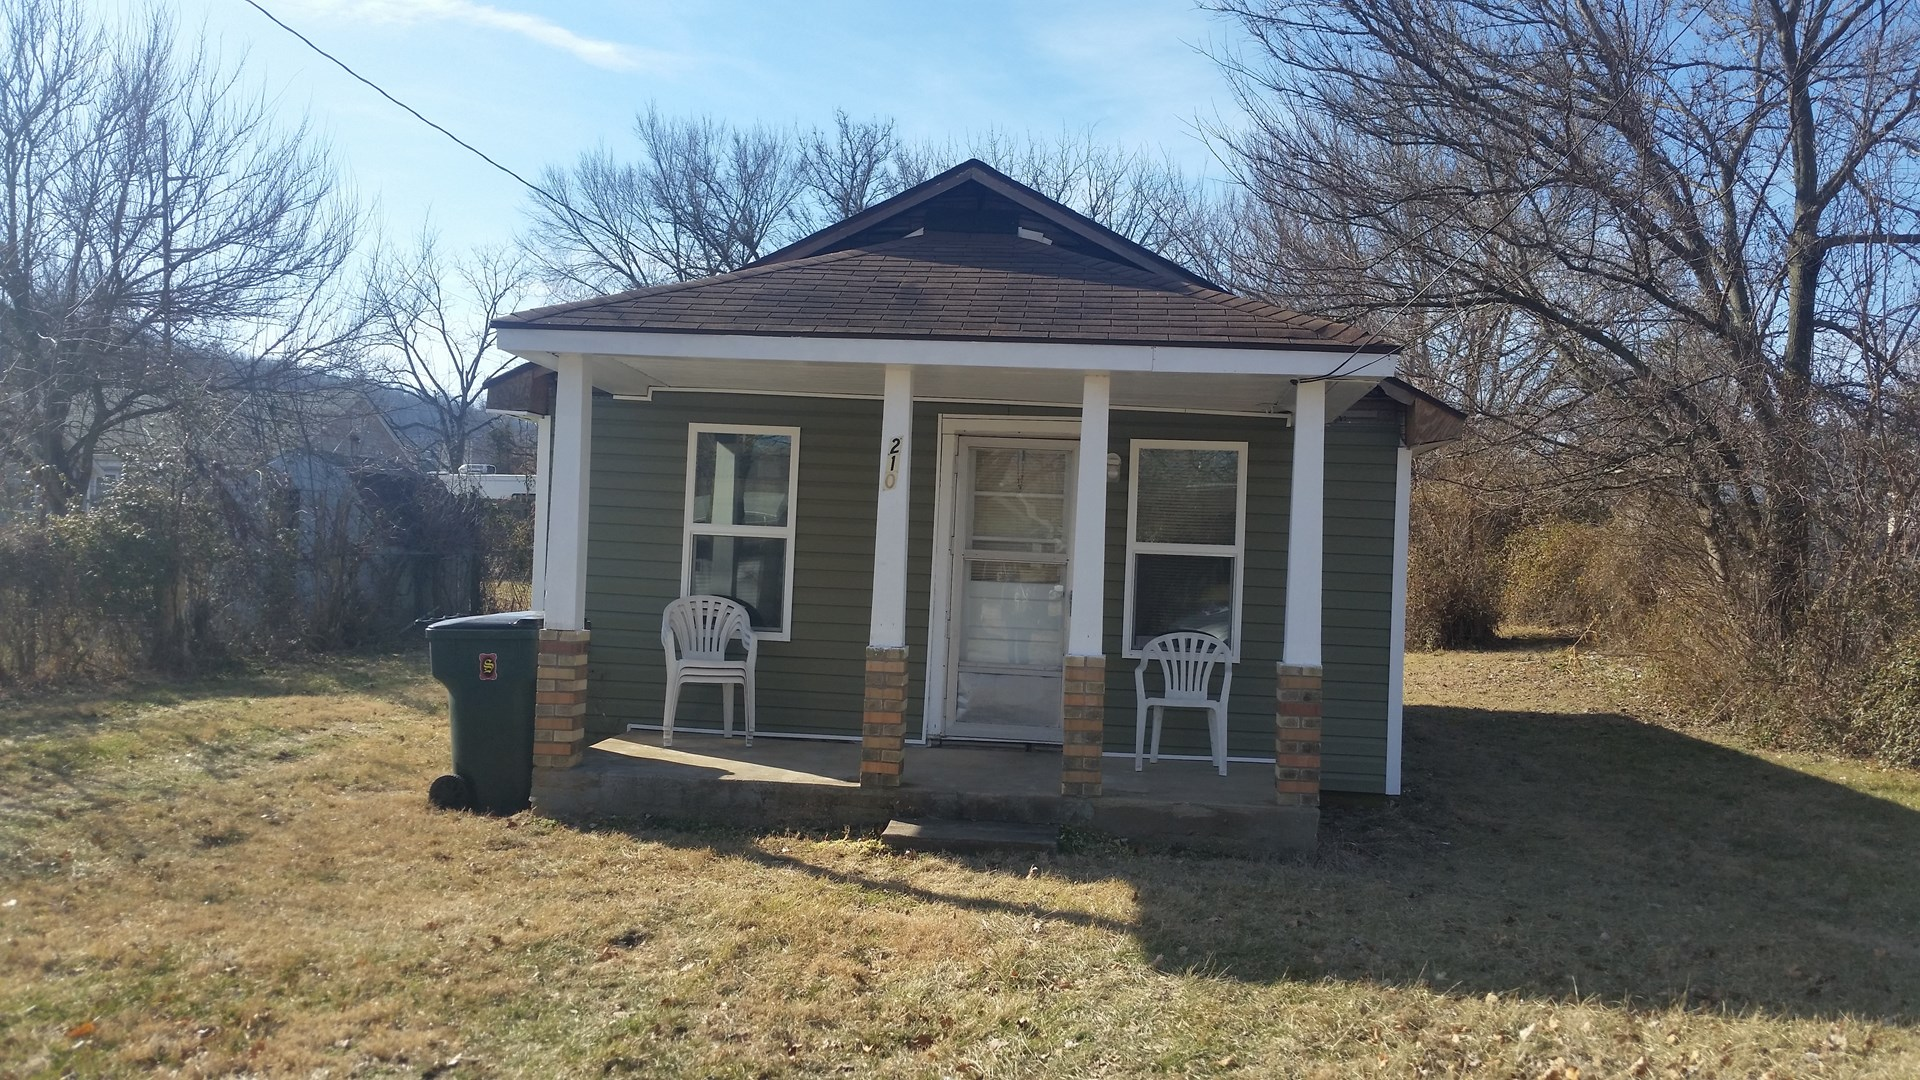 For Sale: Cute little 1 bedroom1 bath home in Pilot Knob